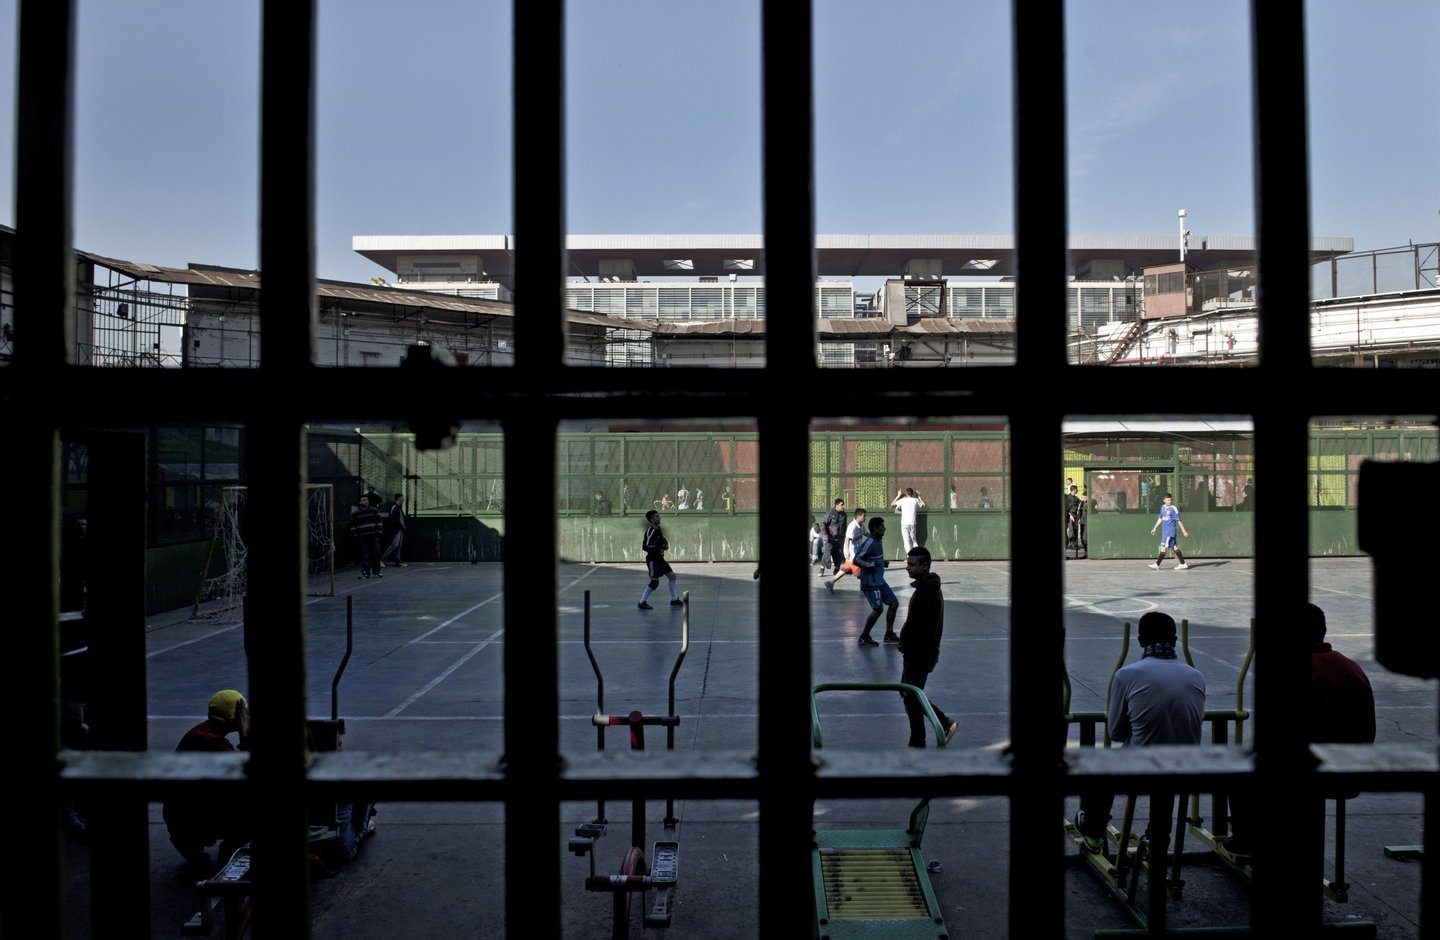 View of the yard of the penitentiary of Santiago, Chile on August 13, 2014. Wearing three-piece suits and carrying bibles, a group of evangelists are reforming Chilean prisons. They claim their visits to prisoners have resulted in many conversions to evangelism and that the recidivism has decreased. AFP PHOTO/MARTIN BERNETTI        (Photo credit should read MARTIN BERNETTI/AFP/Getty Images)